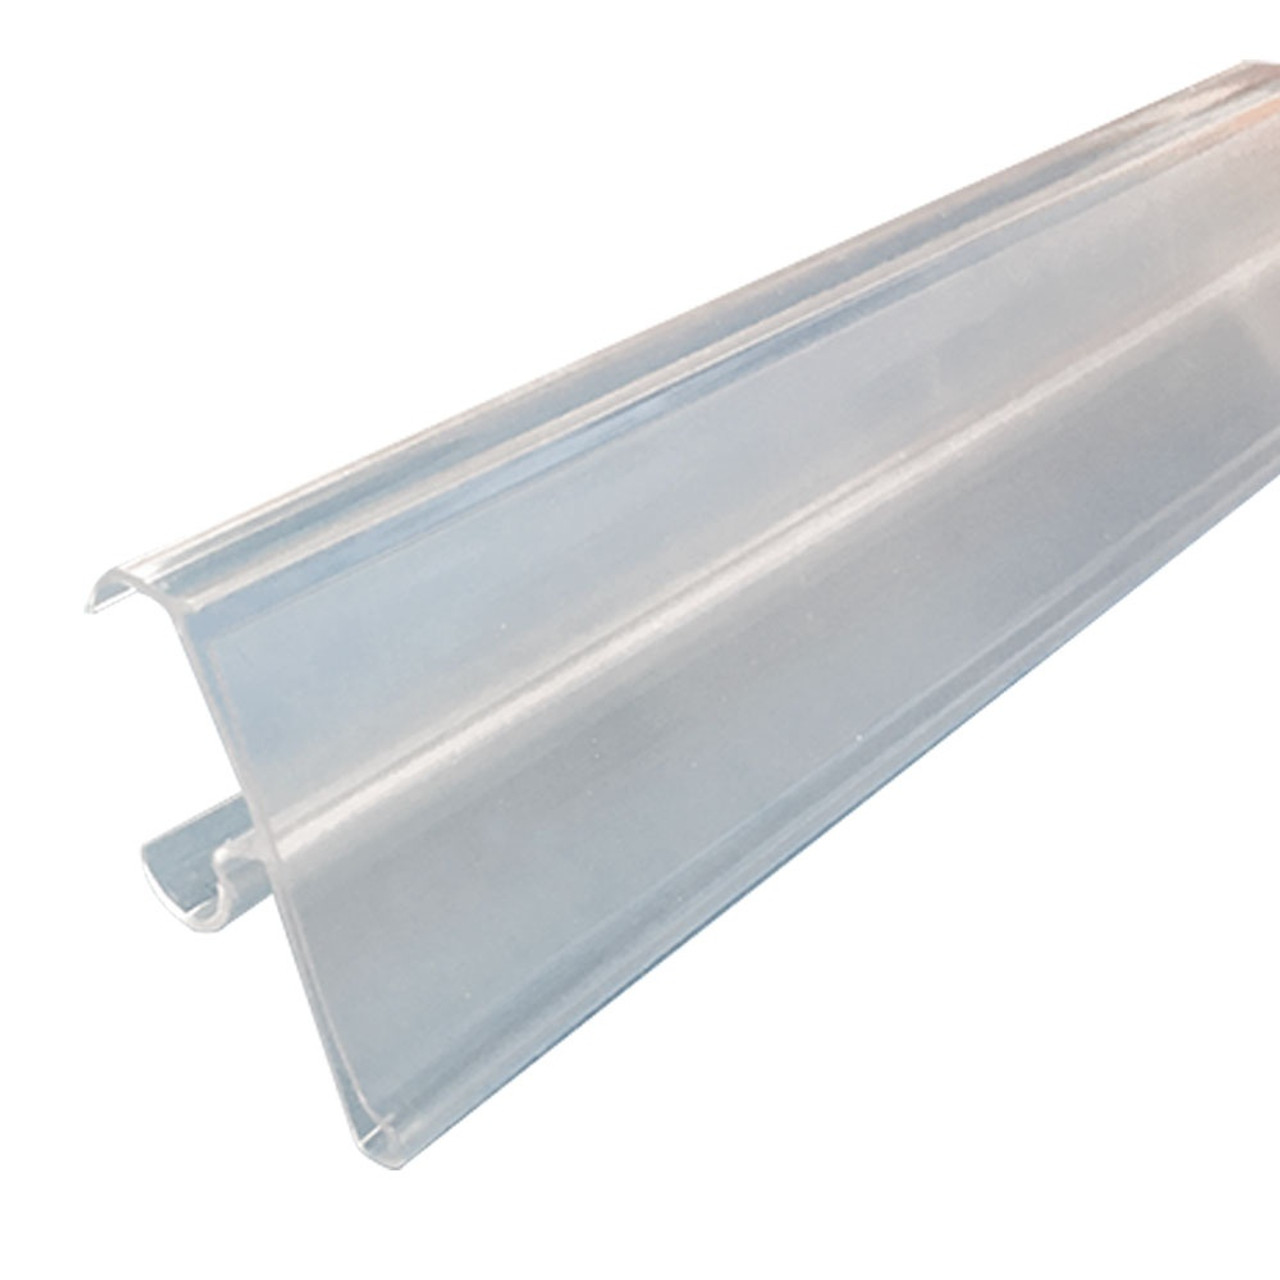 label holder strip w cover 7 8h double wire cooler shelf clear 29 1 2w